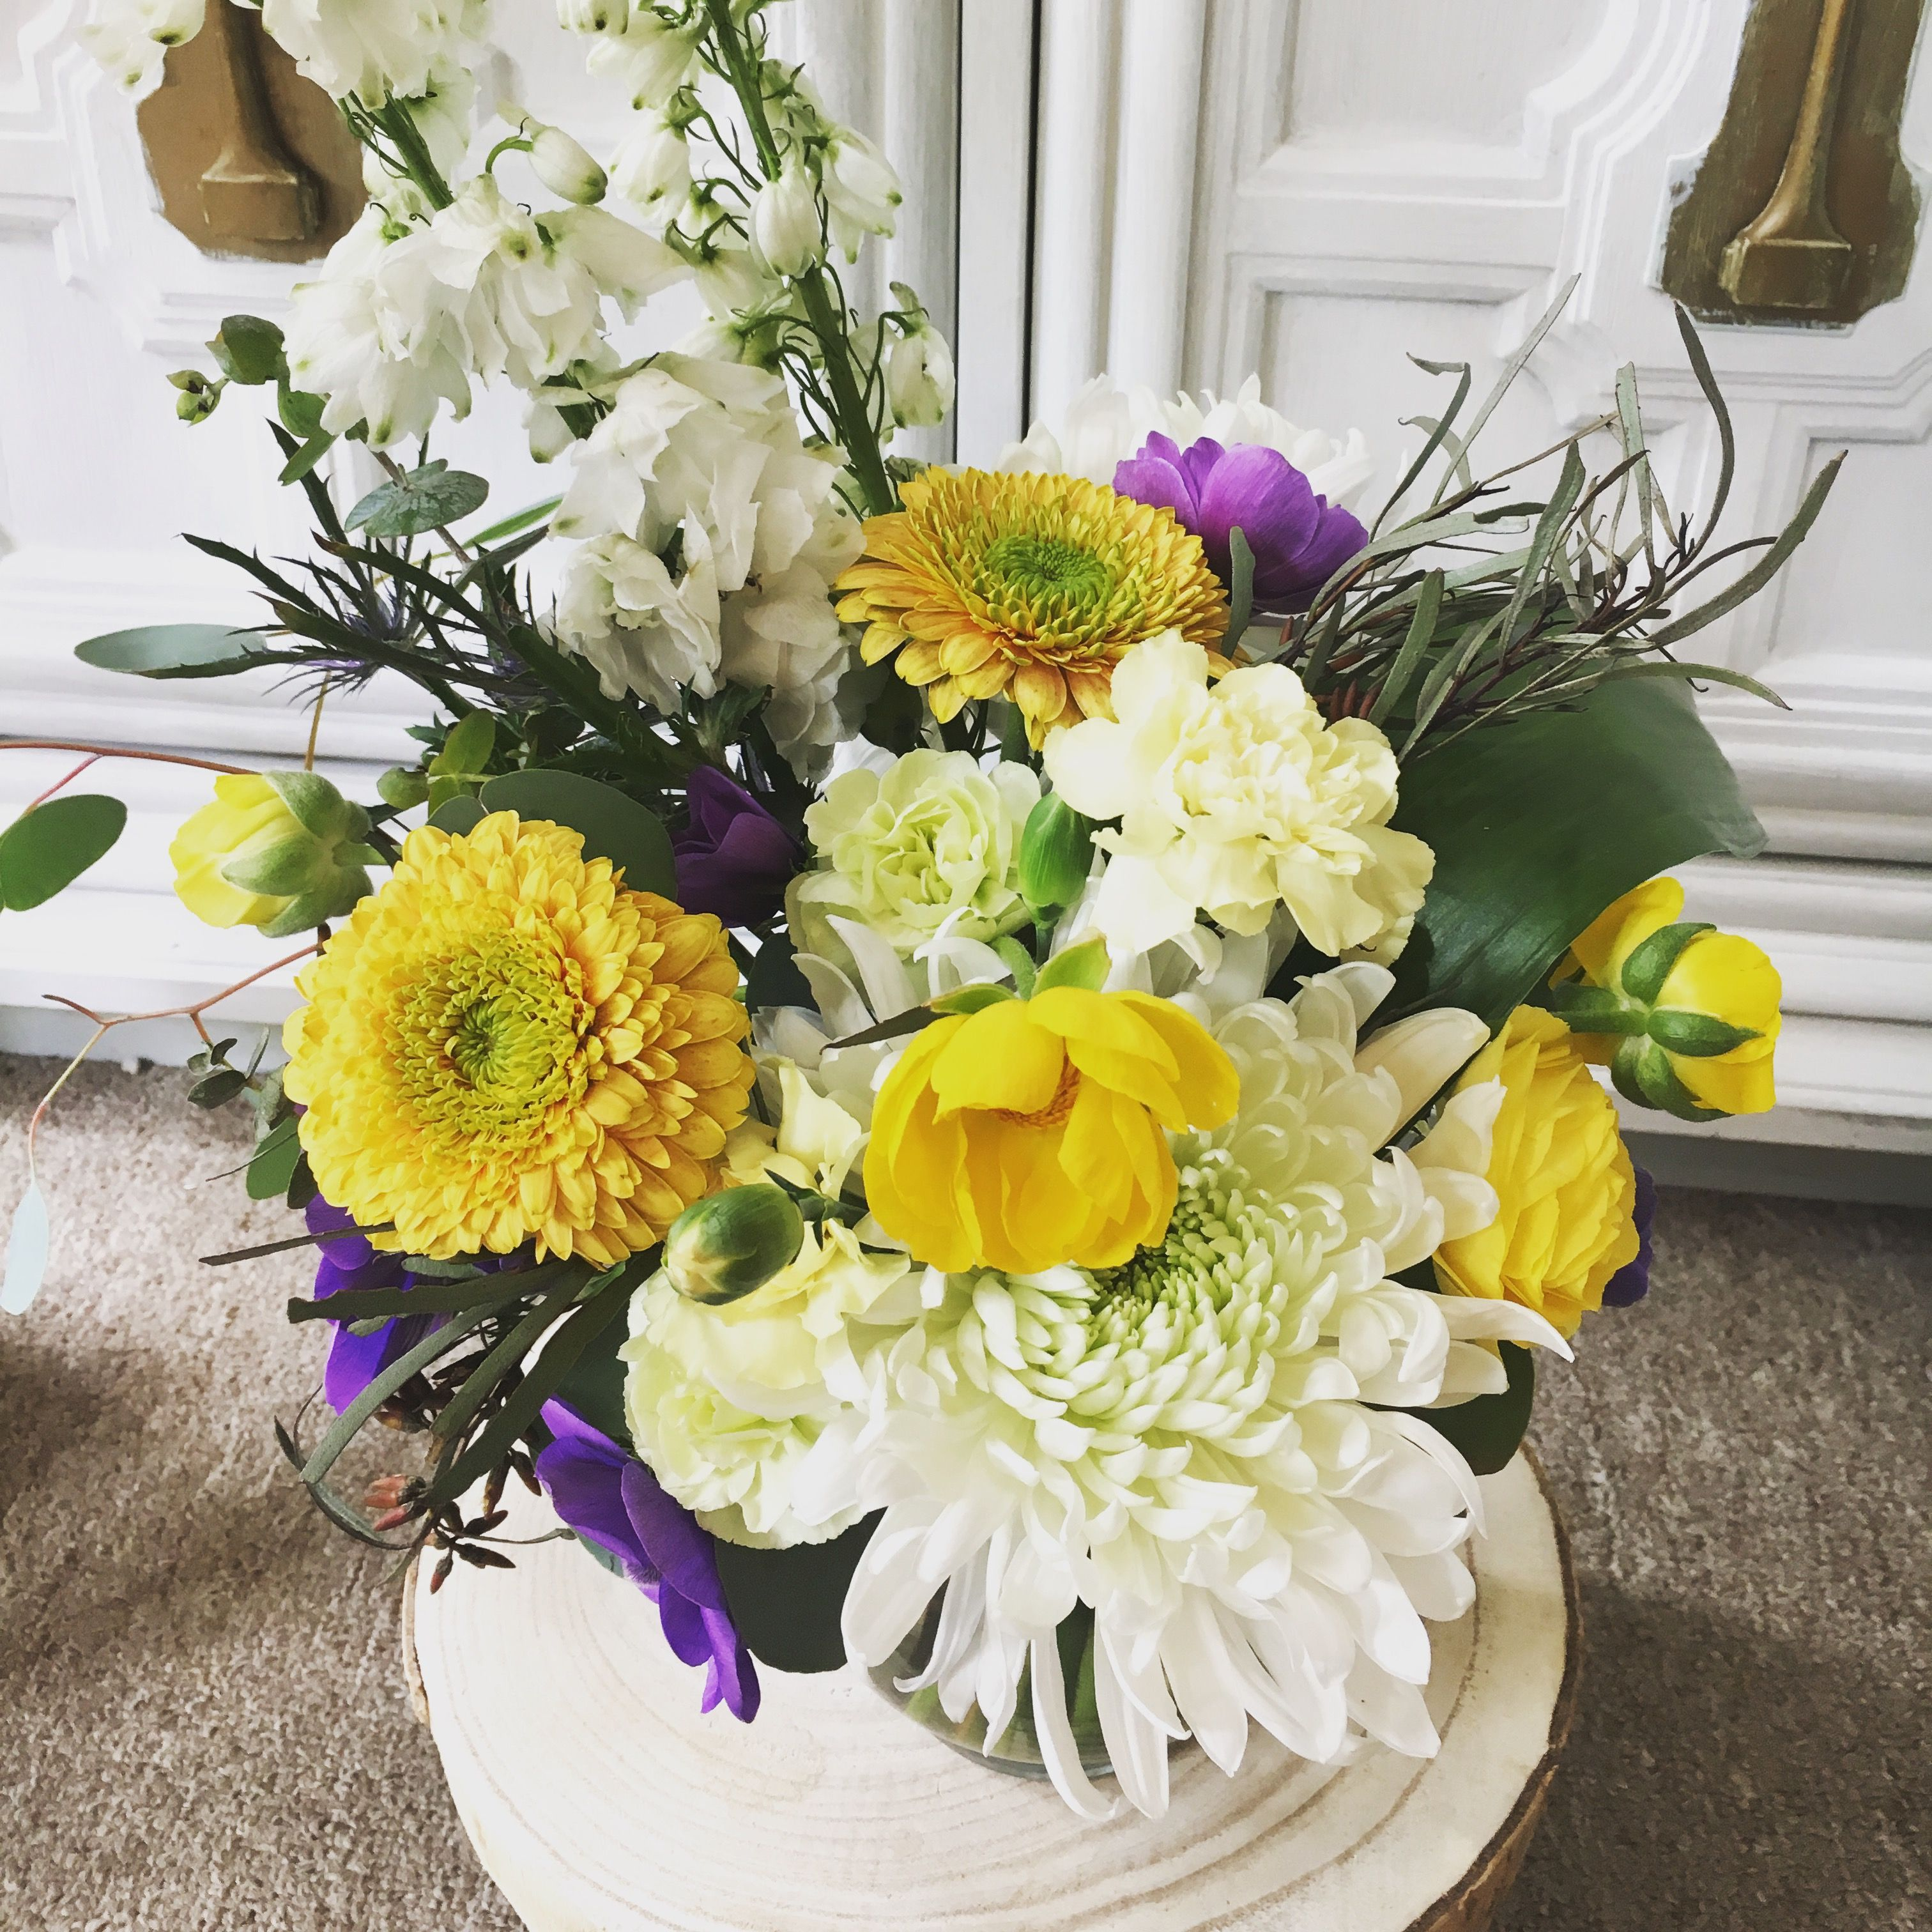 Another angle of the spring bouquet floral arrangements